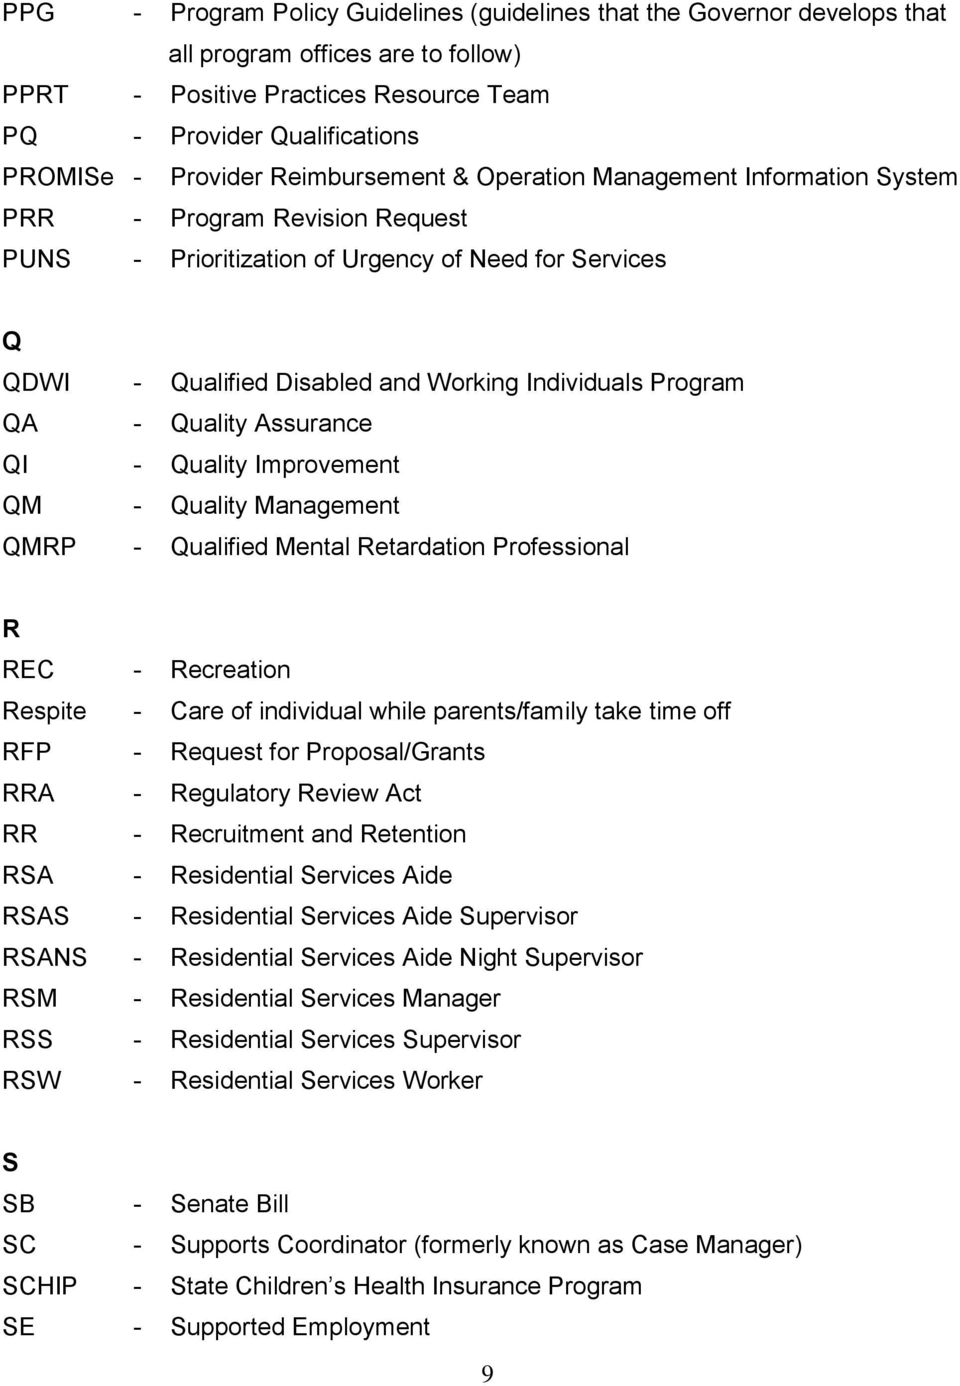 Program QA - Quality Assurance QI - Quality Improvement QM - Quality Management QMRP - Qualified Mental Retardation Professional R REC - Recreation Respite - Care of individual while parents/family